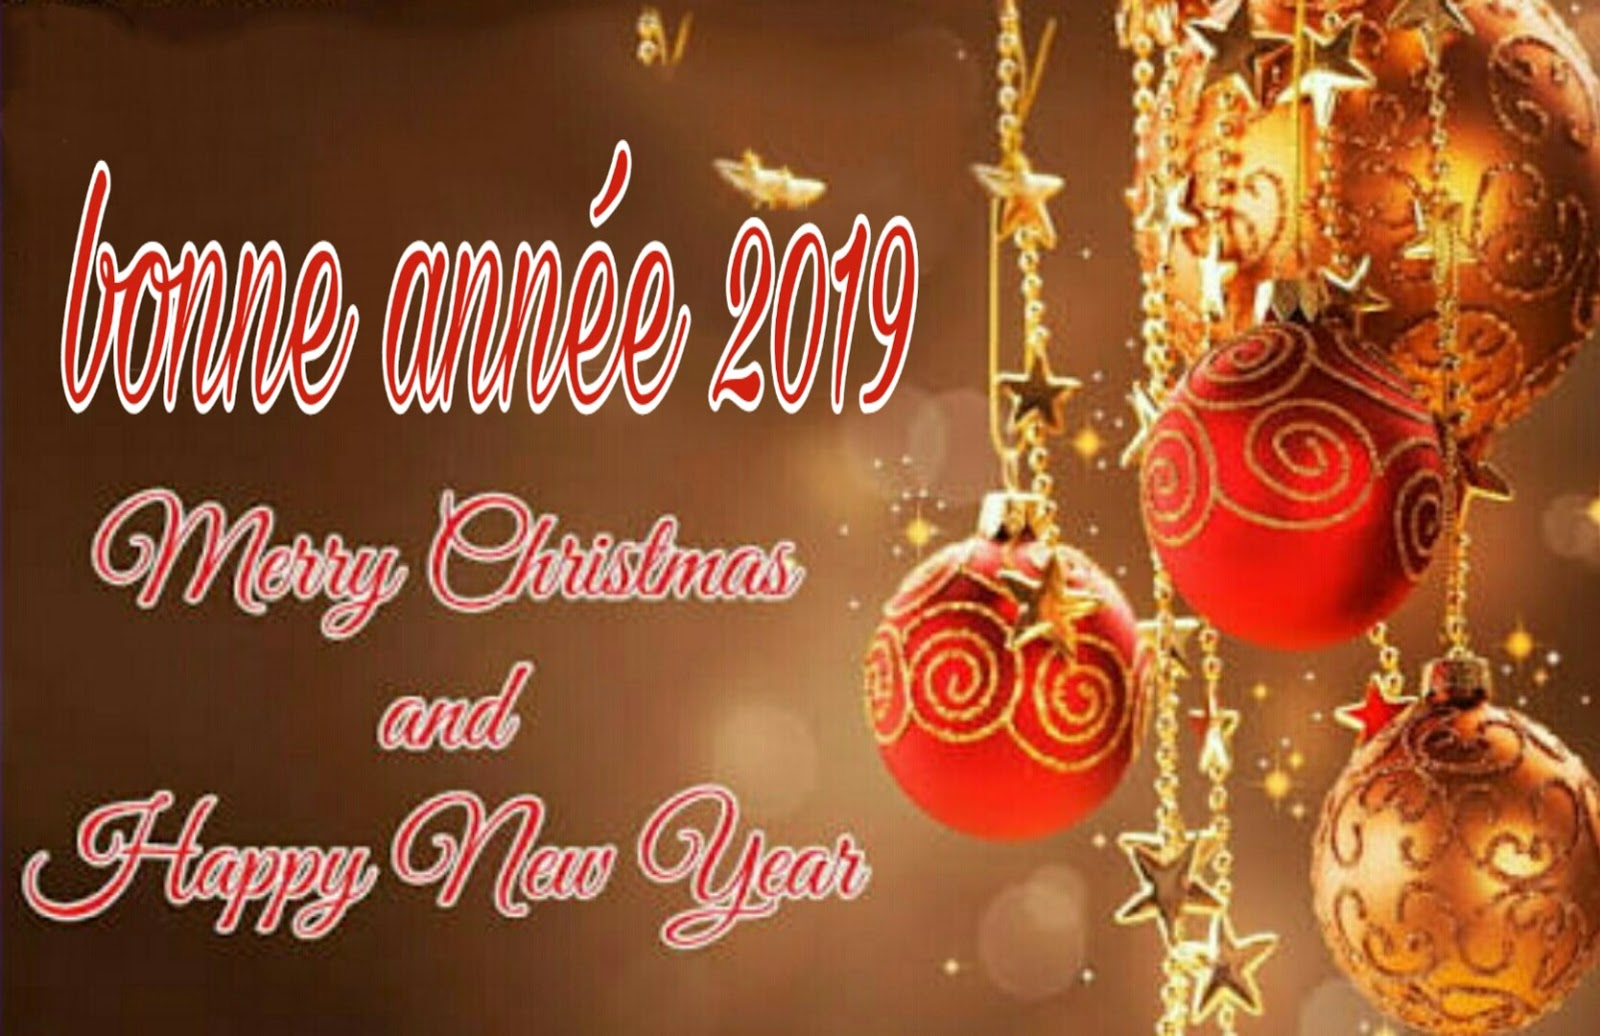 Happy New Year Wishes In French Language 2019 Happy New Year